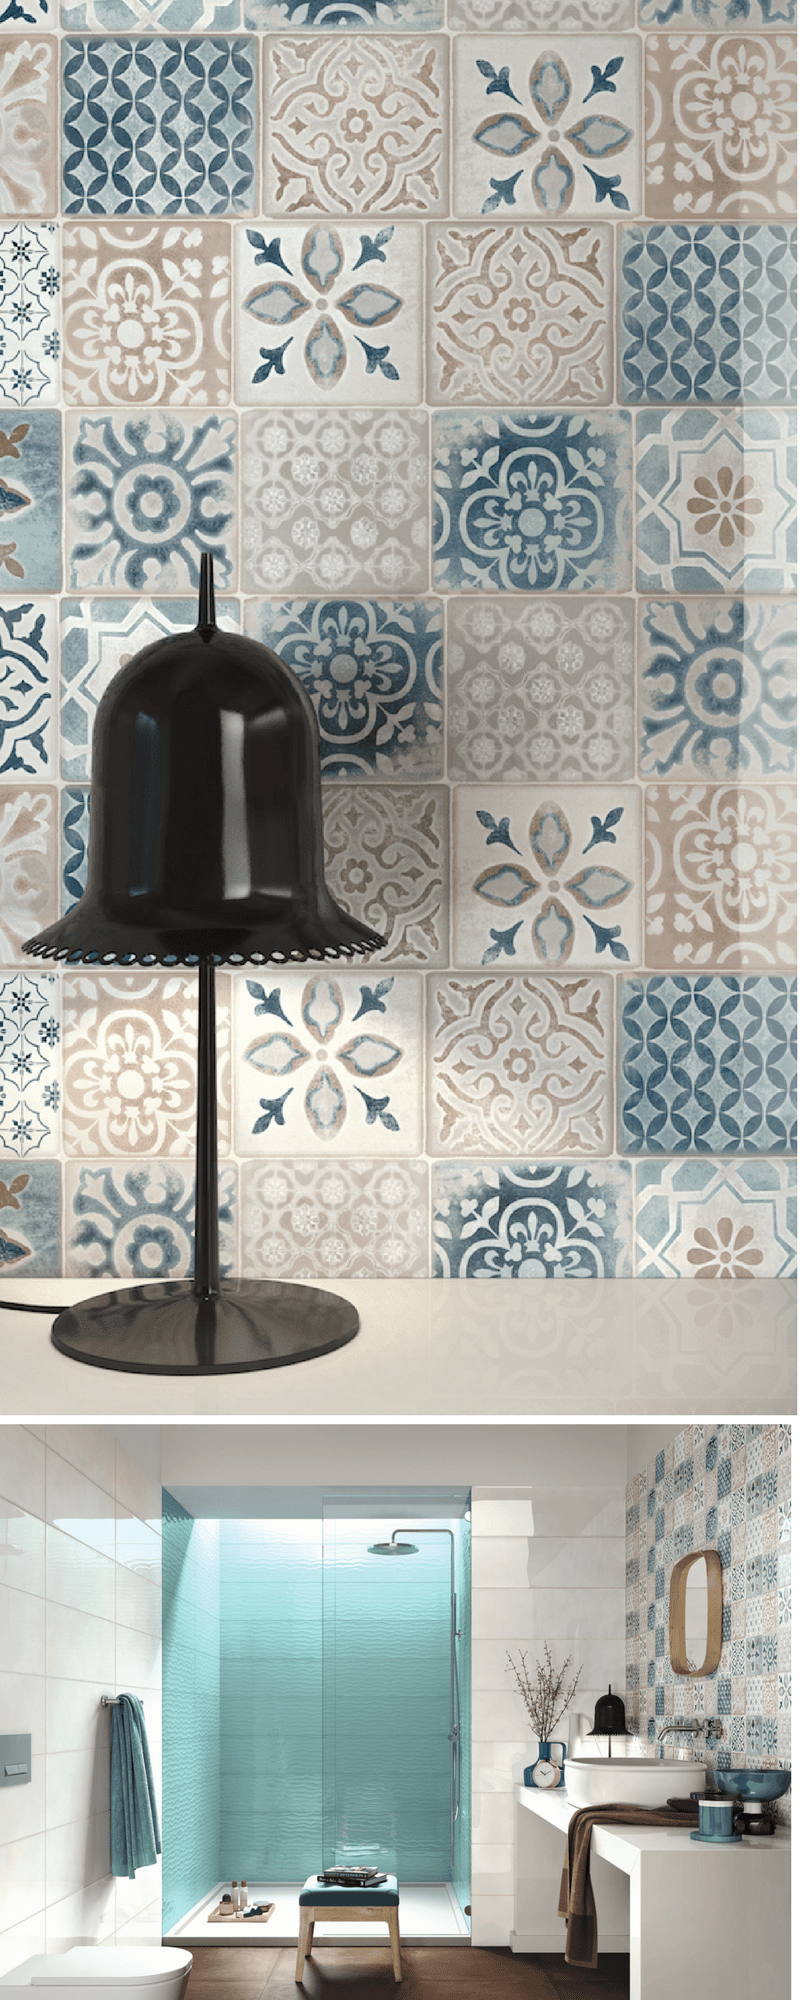 Mosaic style mediterranean tiles, moroccan tiles in the bathroom and kitchen walls